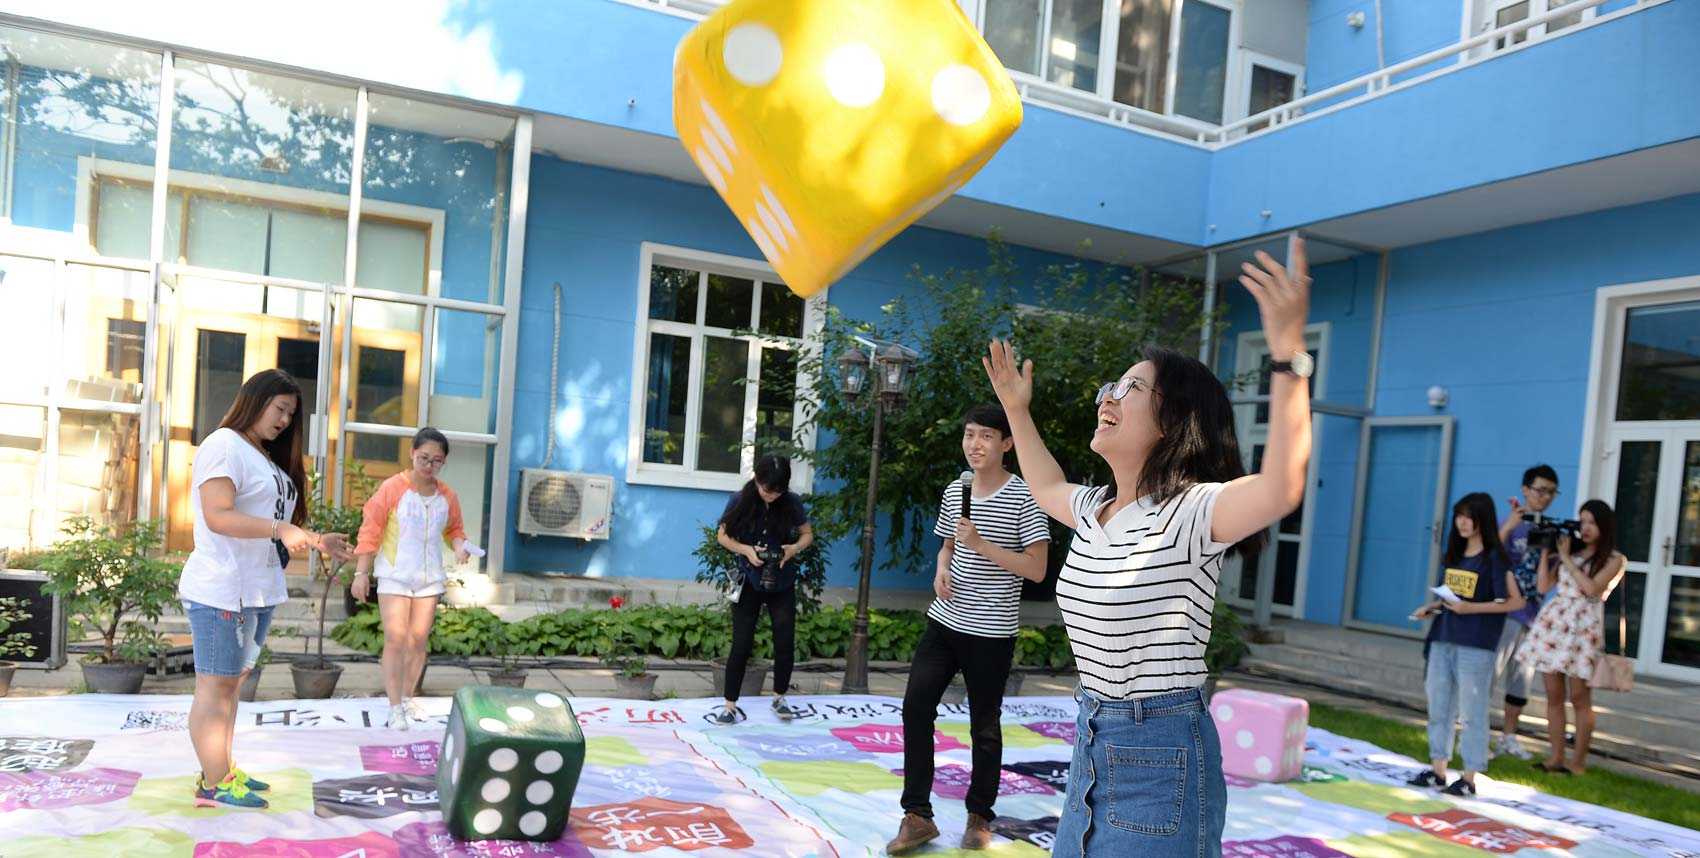 Children play room-sized game in courtyard of school on sunny day